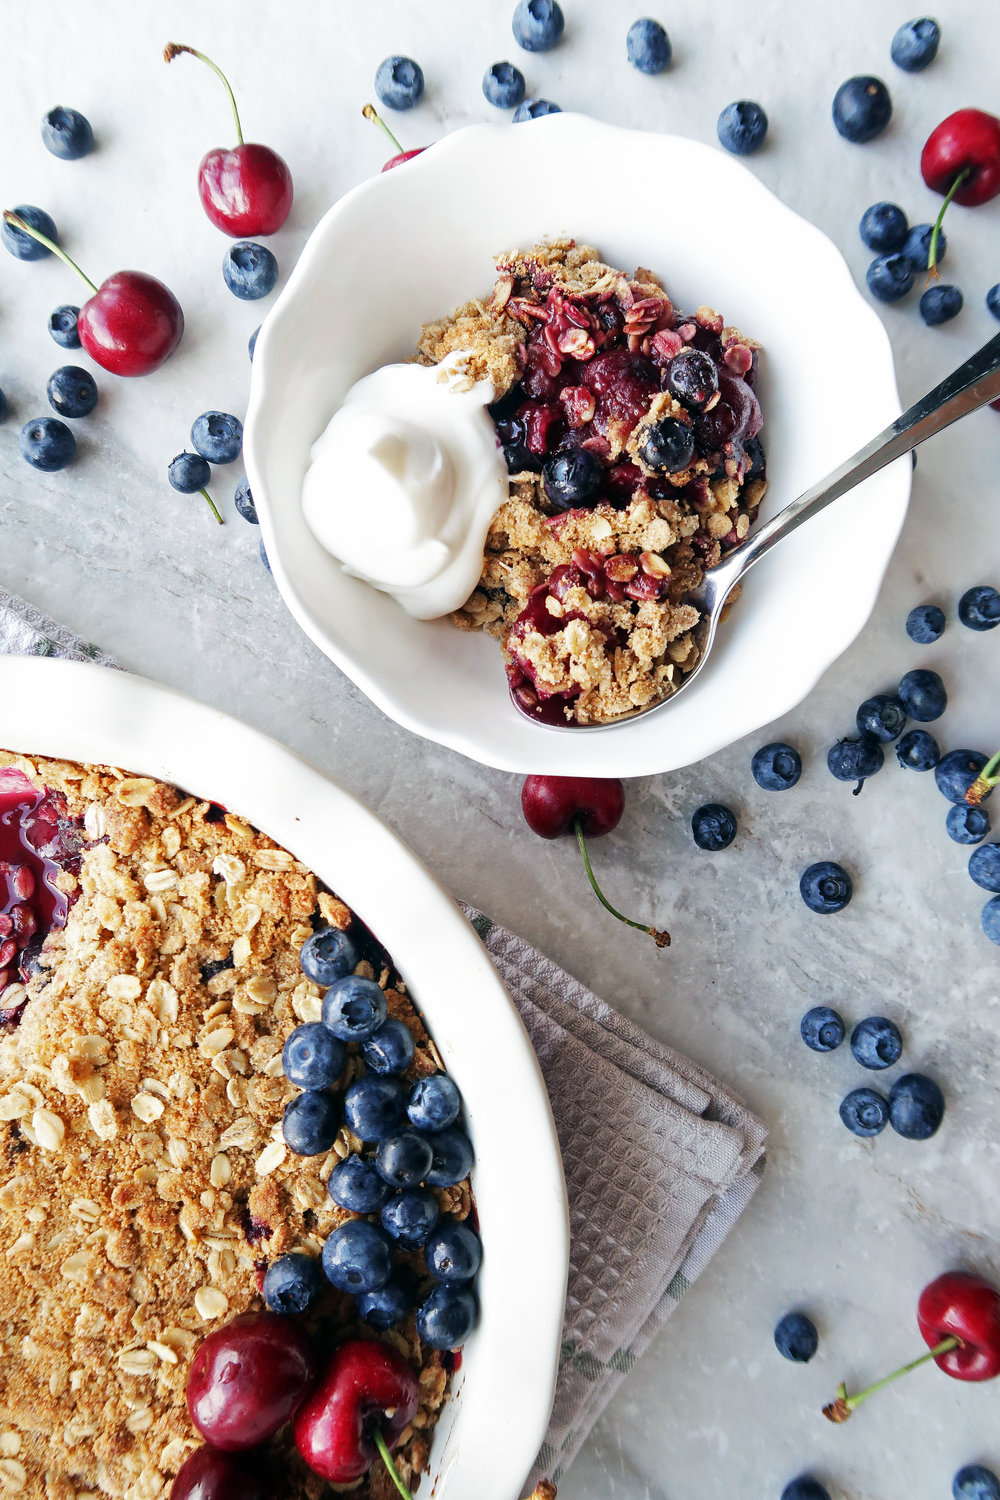 Cherry blueberry oat crisp with whipped cream in a white bowl with a spoon and a large pie dish of oat crisp.